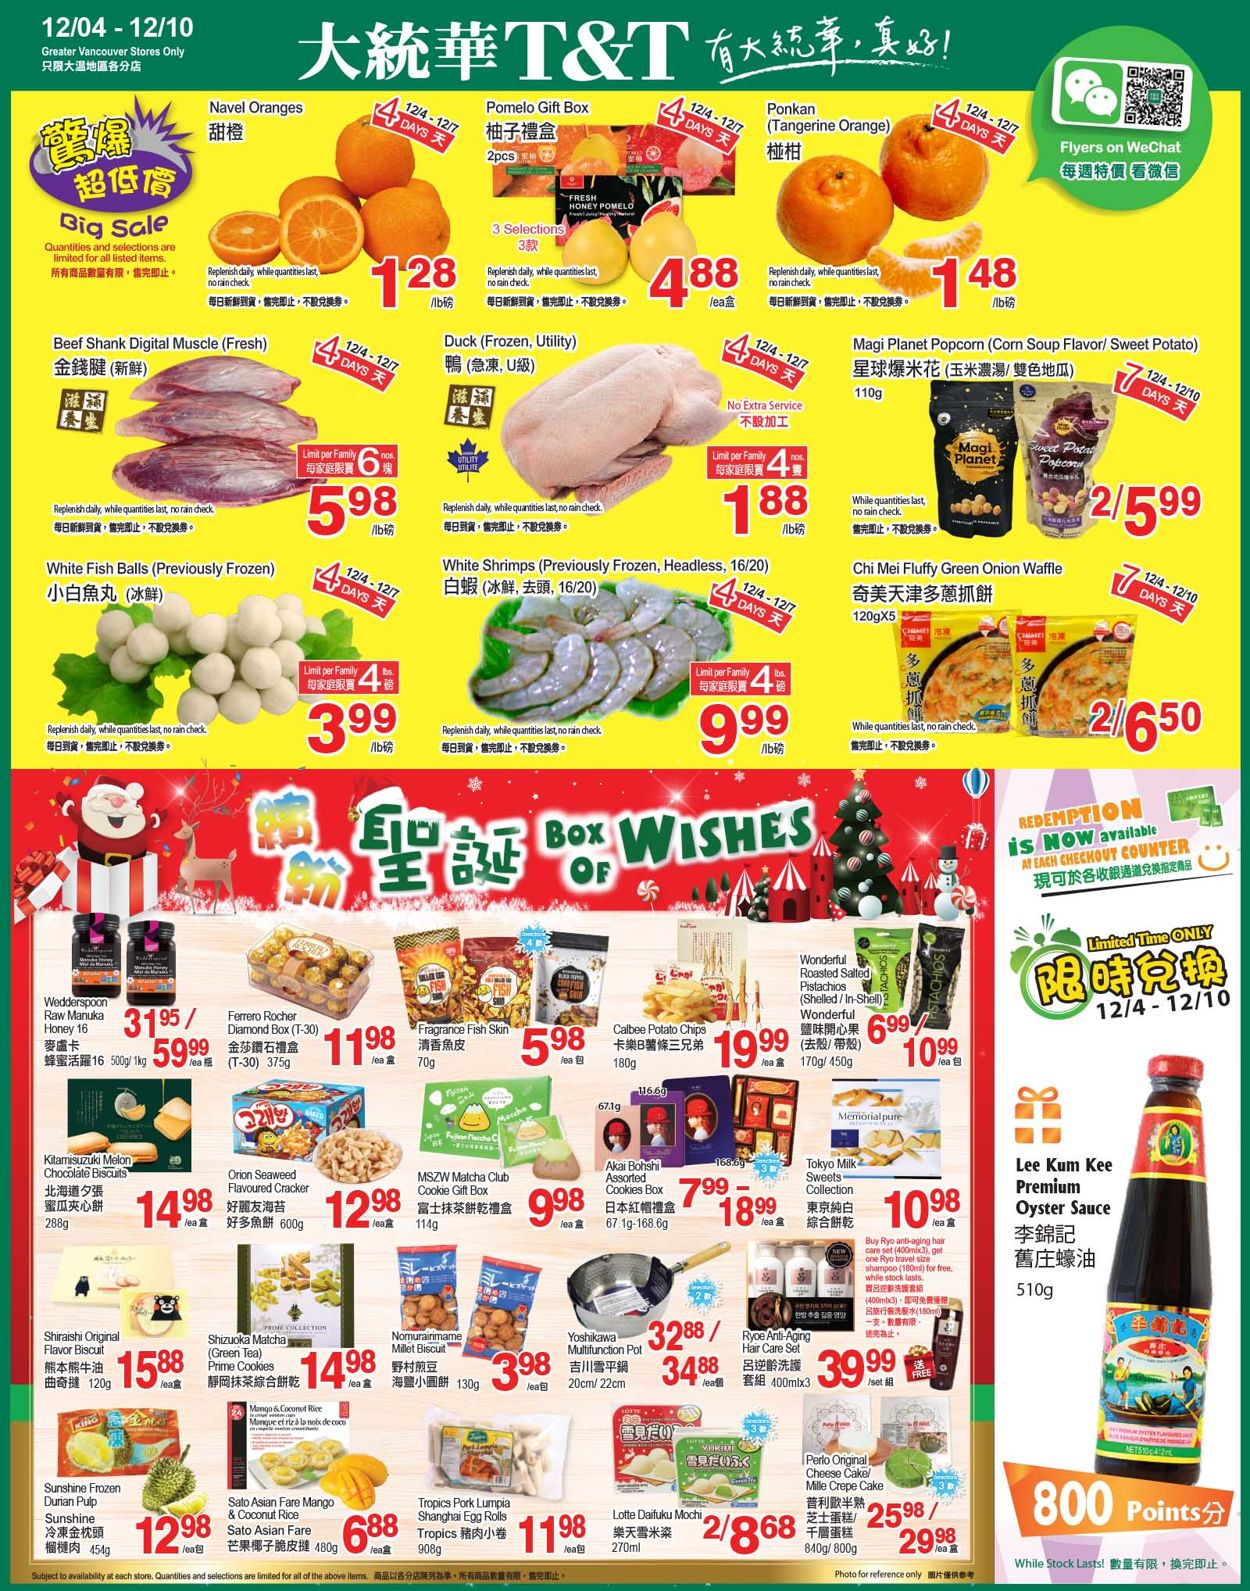 T&T Supermarket Christmas 2020 - British Columbia Flyer - 12/04-12/10/2020